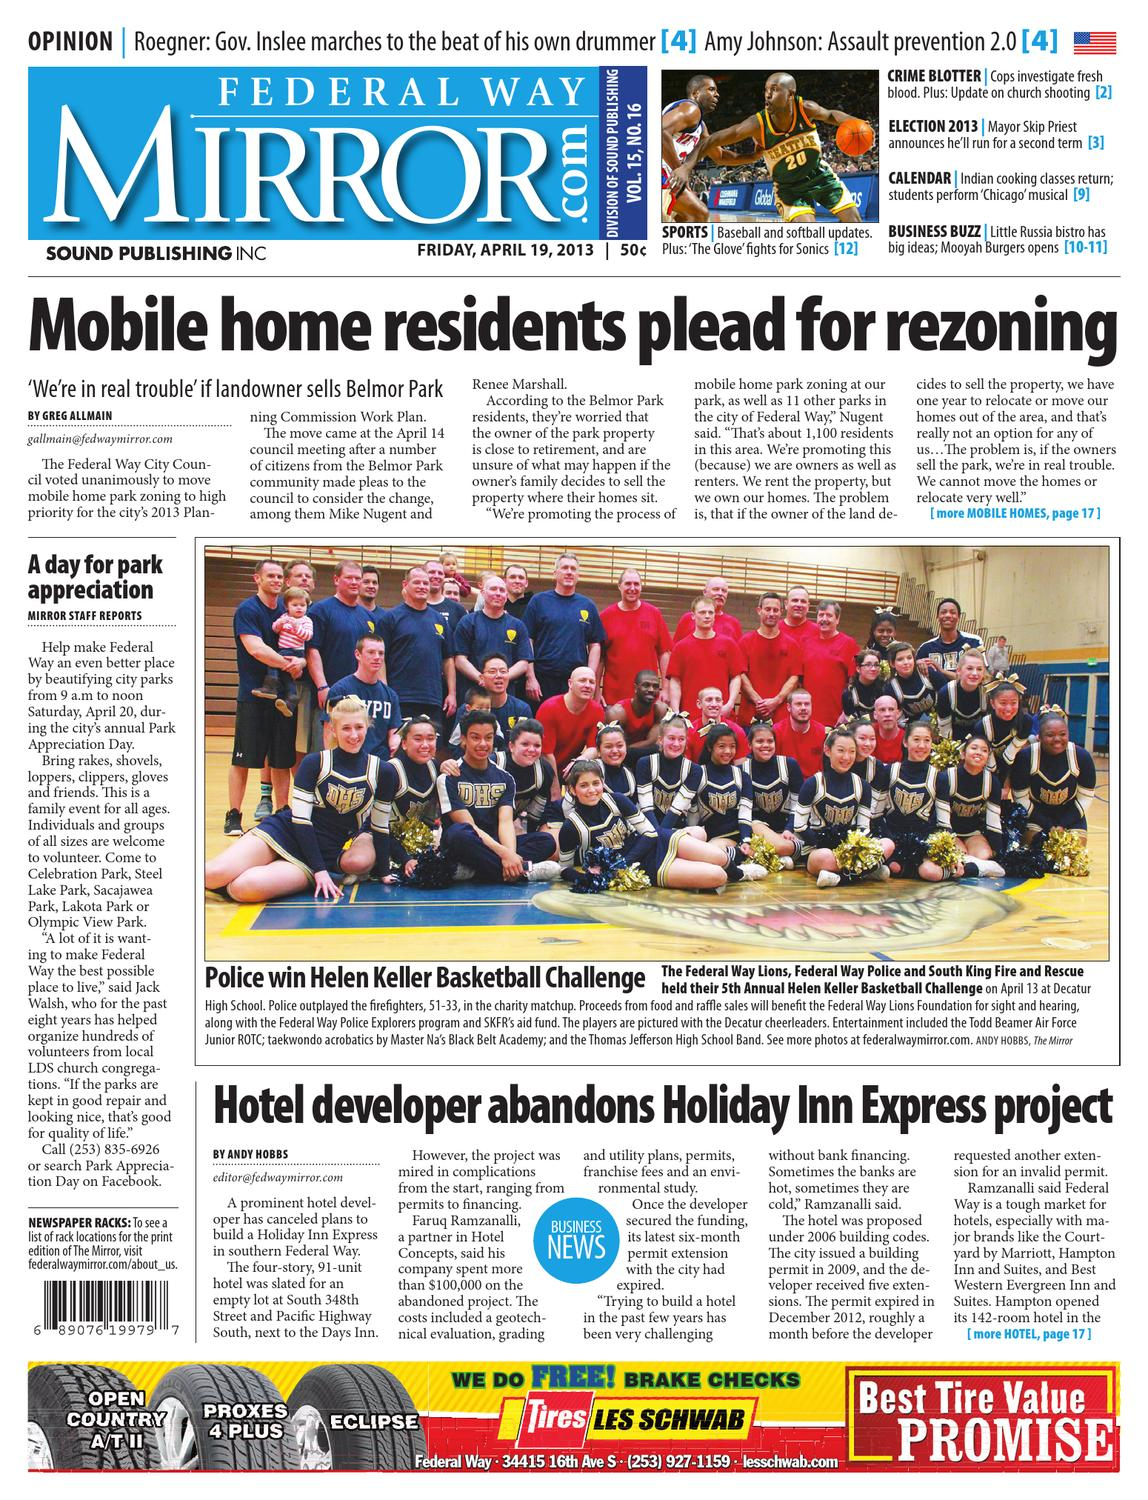 Round Table Federal Way Federal Way Mirror April 19 2013 By Sound Publishing Issuu